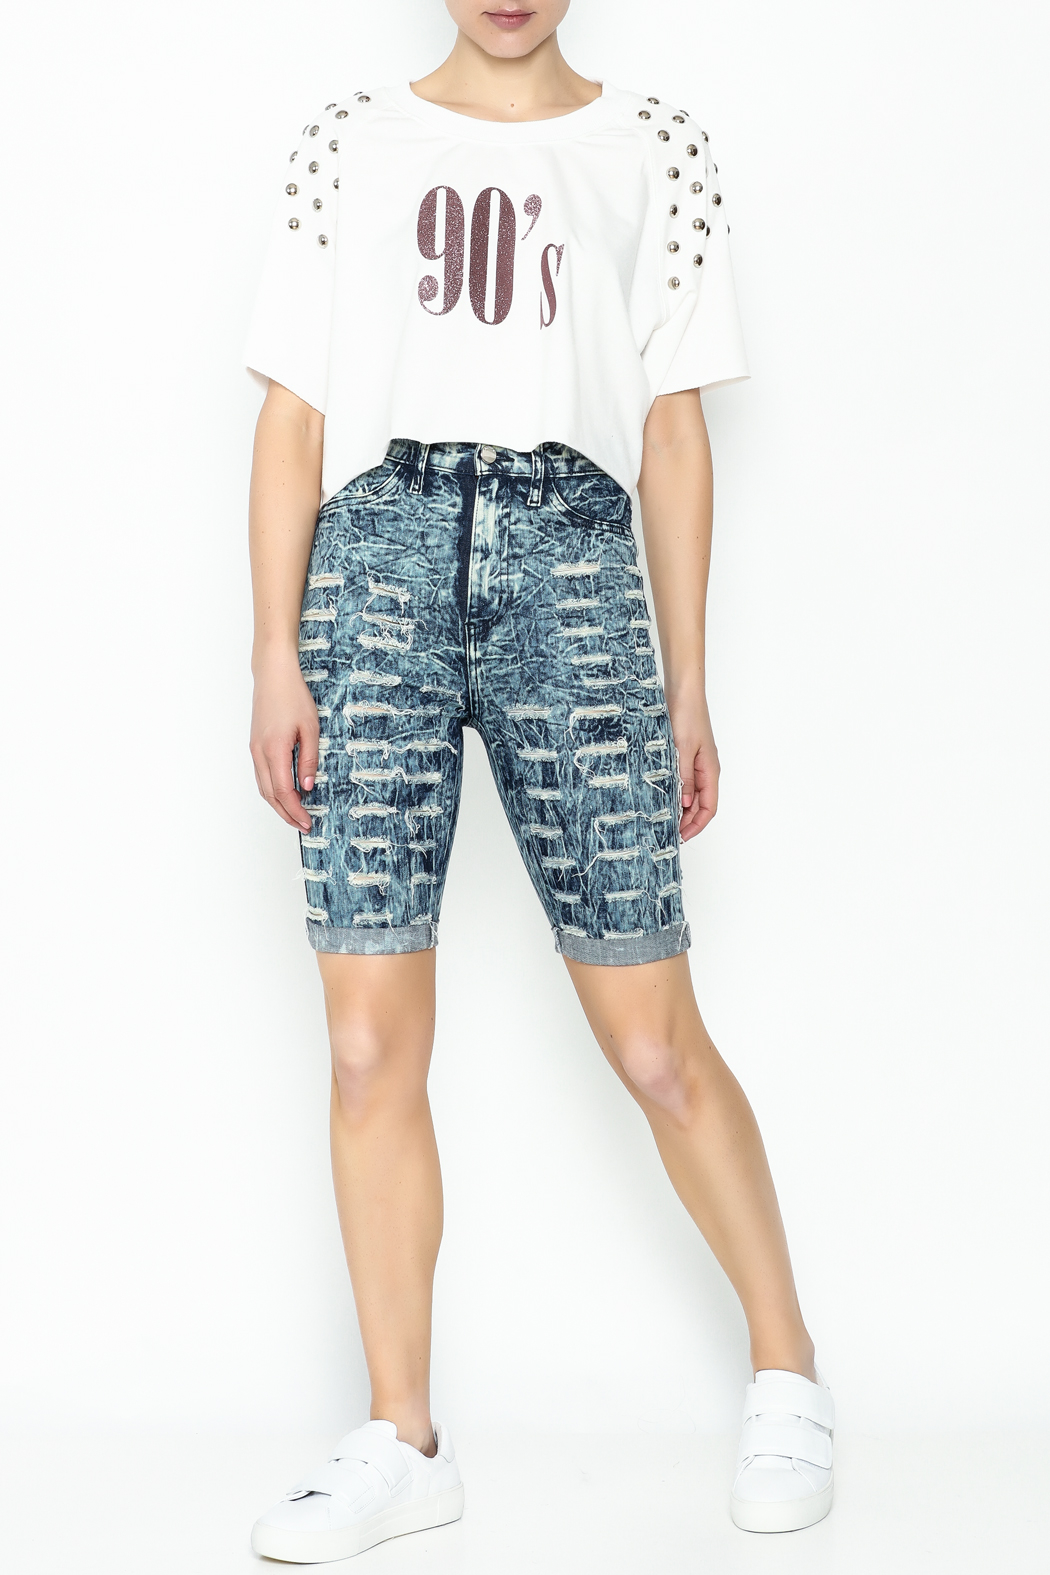 Aphrodite High Waist Distressed Shorts - Side Cropped Image